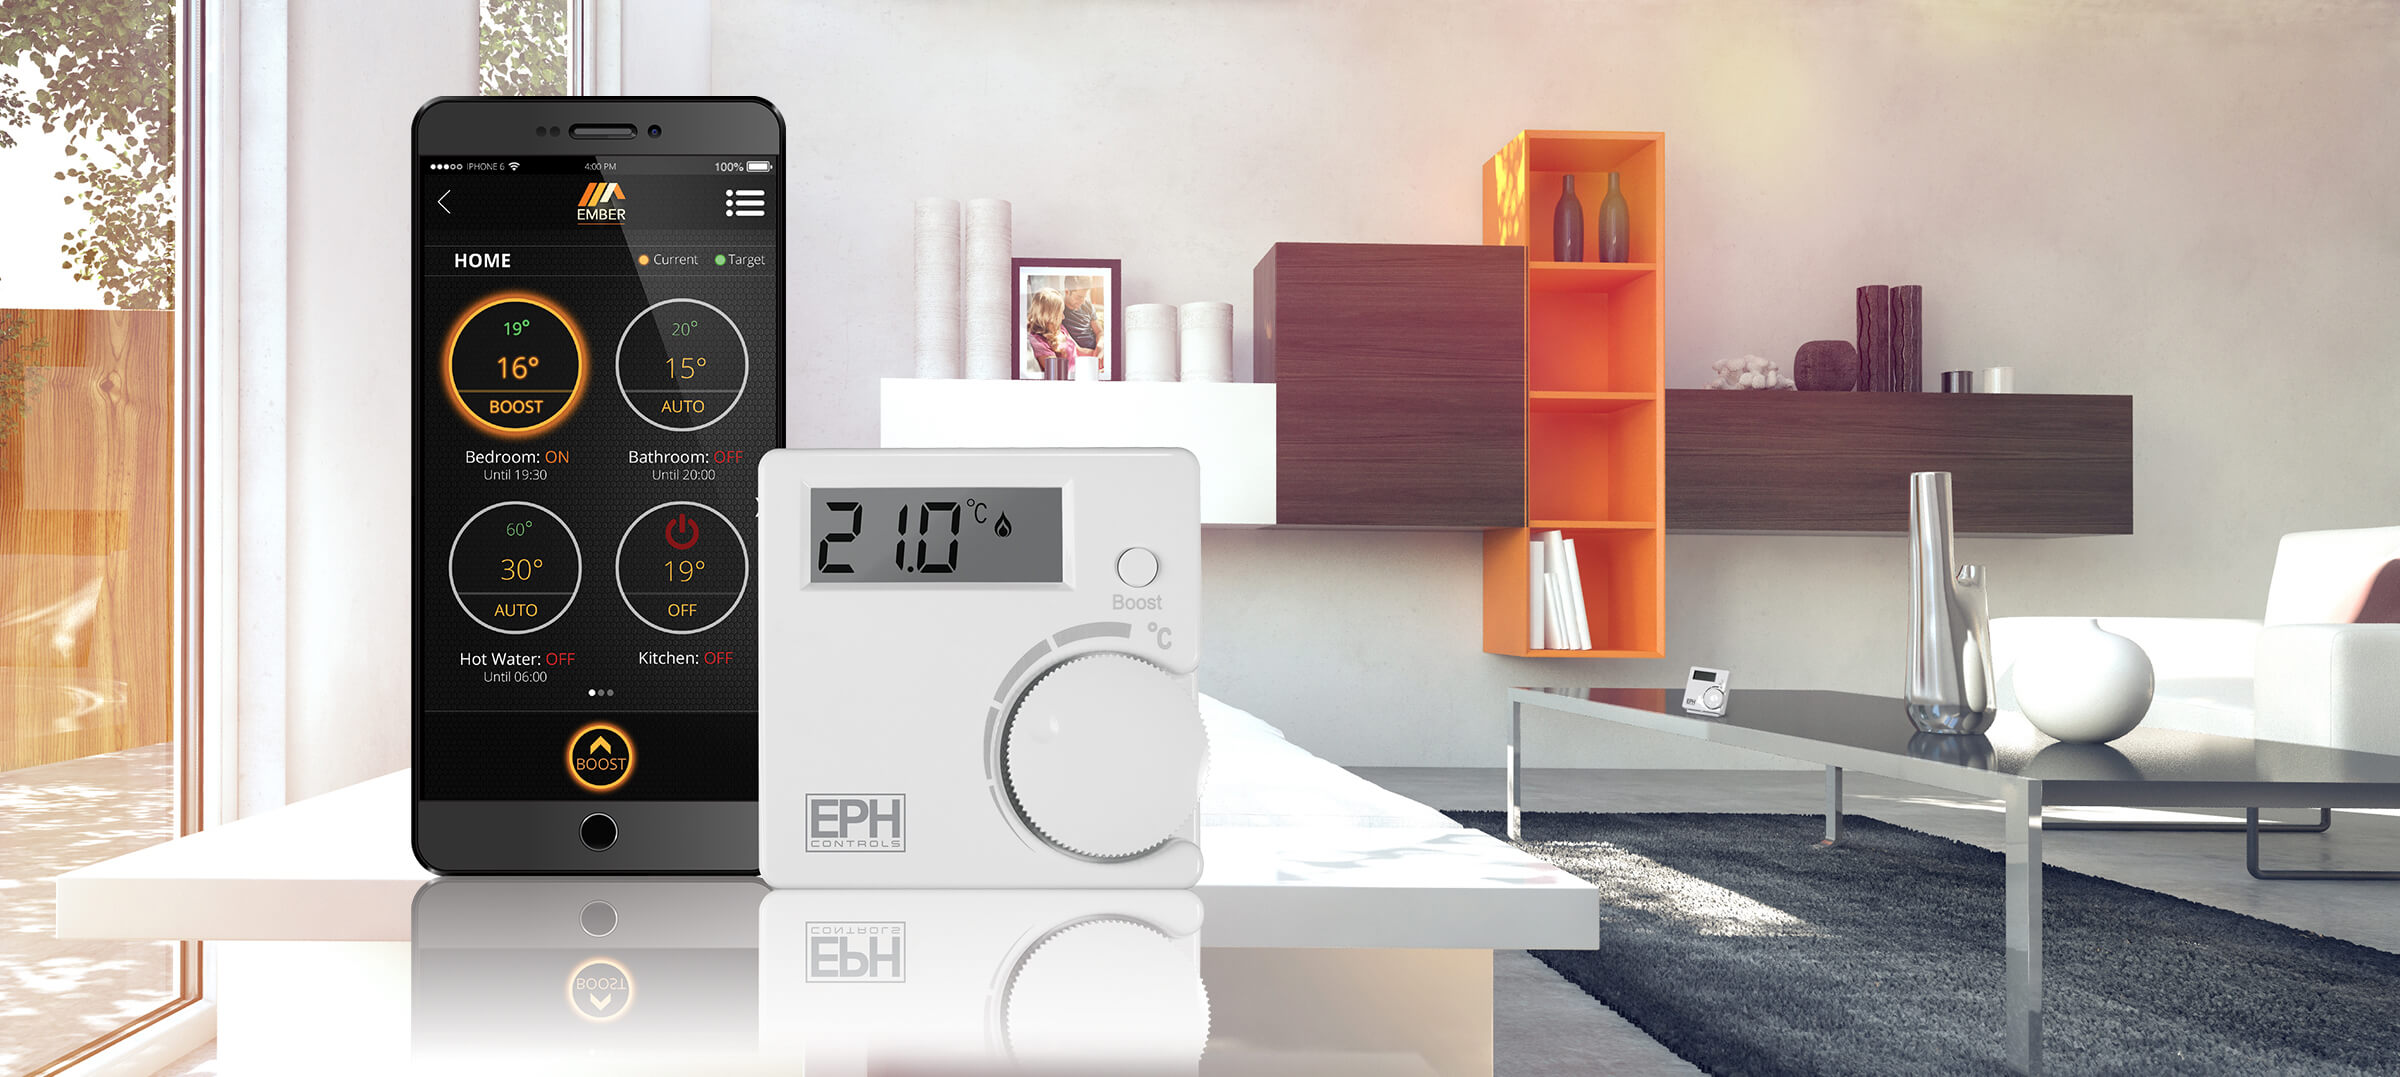 Home Page Eph Controls Digital Clock Circuit Schematic Get Free Image About Wiring Diagram